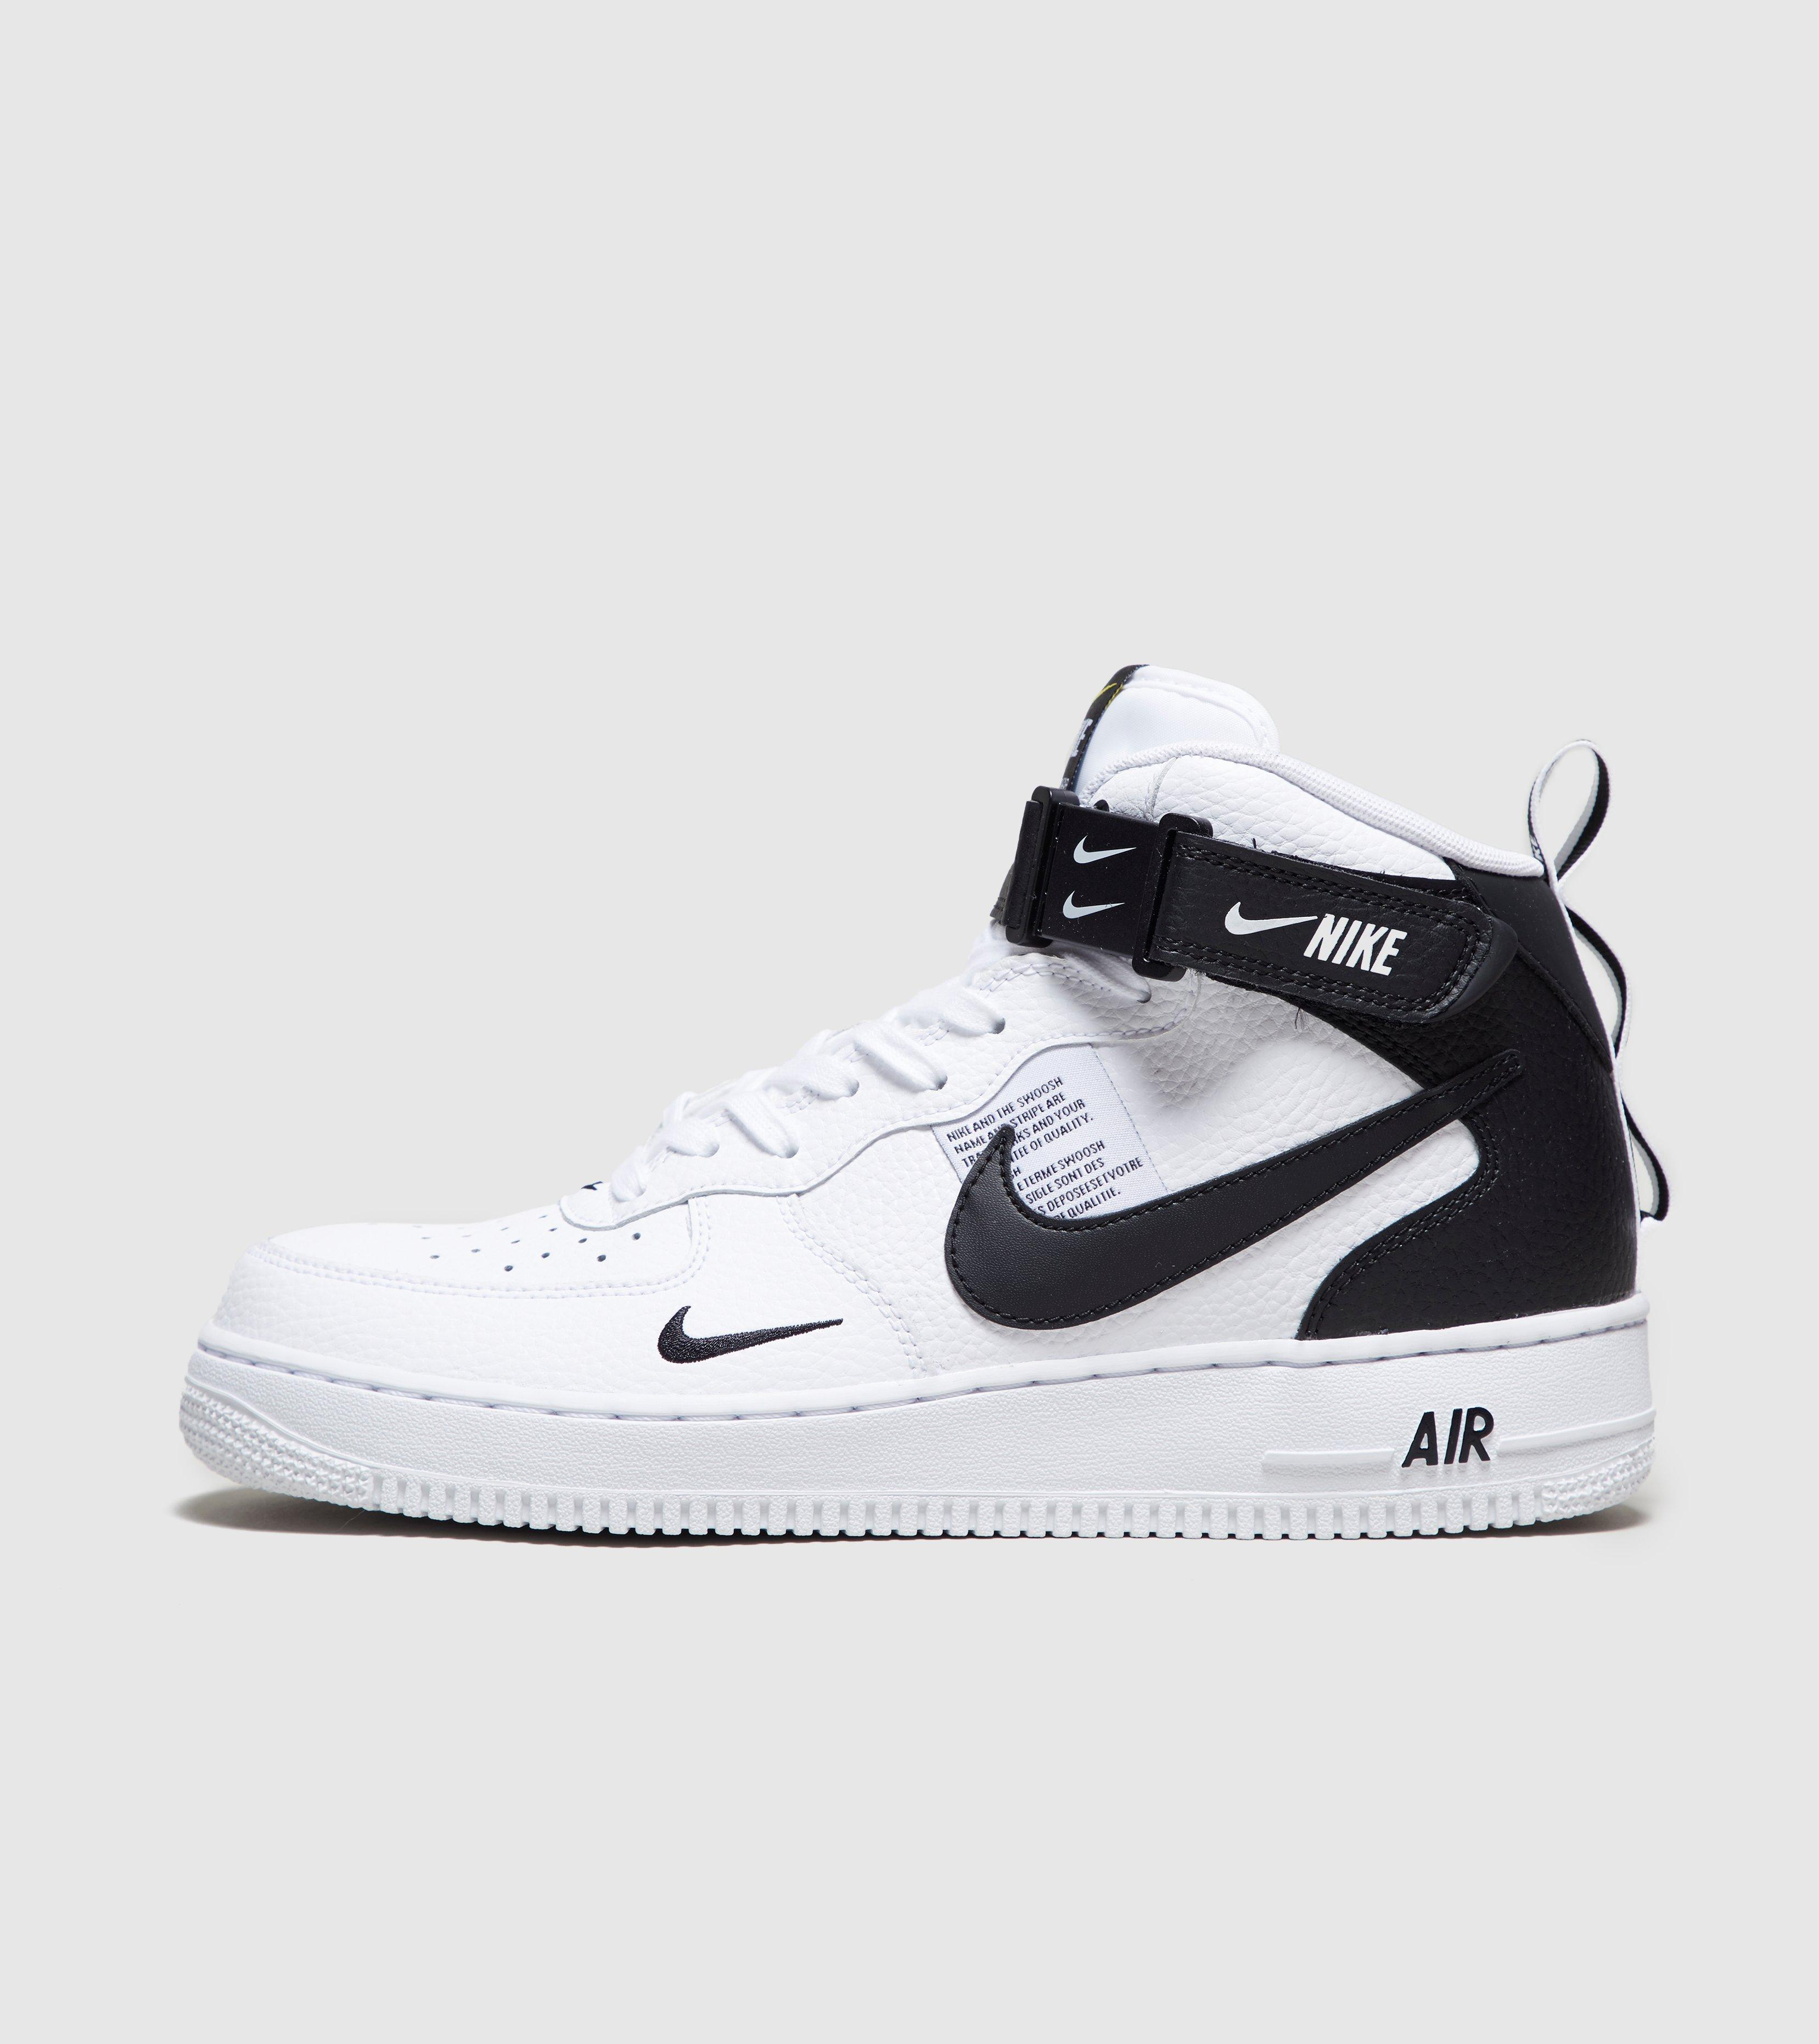 competitive price 2fdc4 8ea85 nike air force 1 high lv8 dame ...